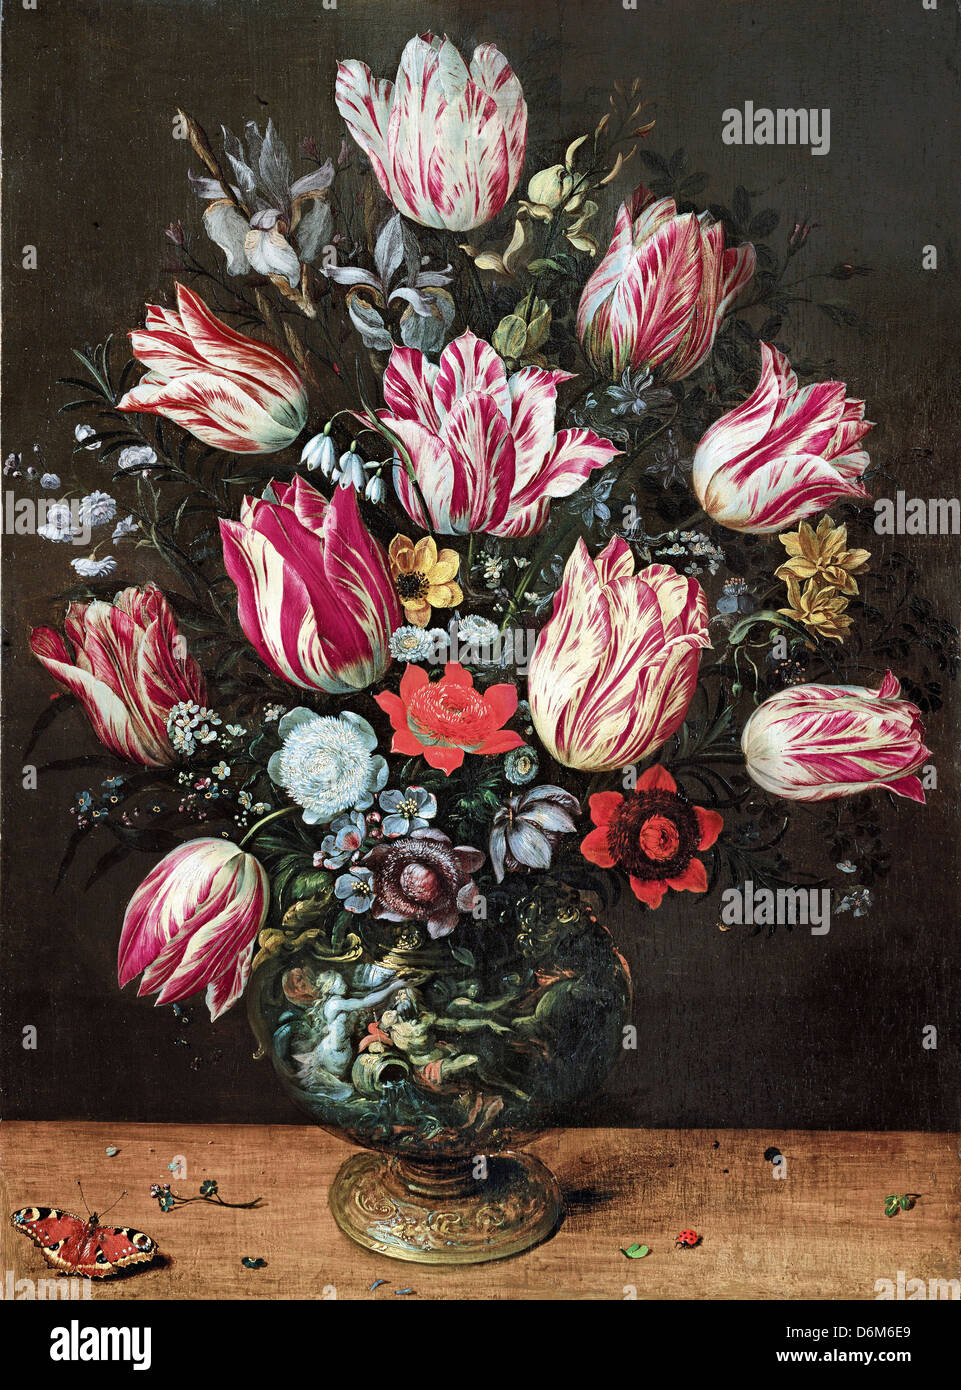 Andries Daniels and Frans Francken the Younger, Vase with Tulips 1620-1625 Oil on panel. Museo de Bellas Artes de - Stock Image